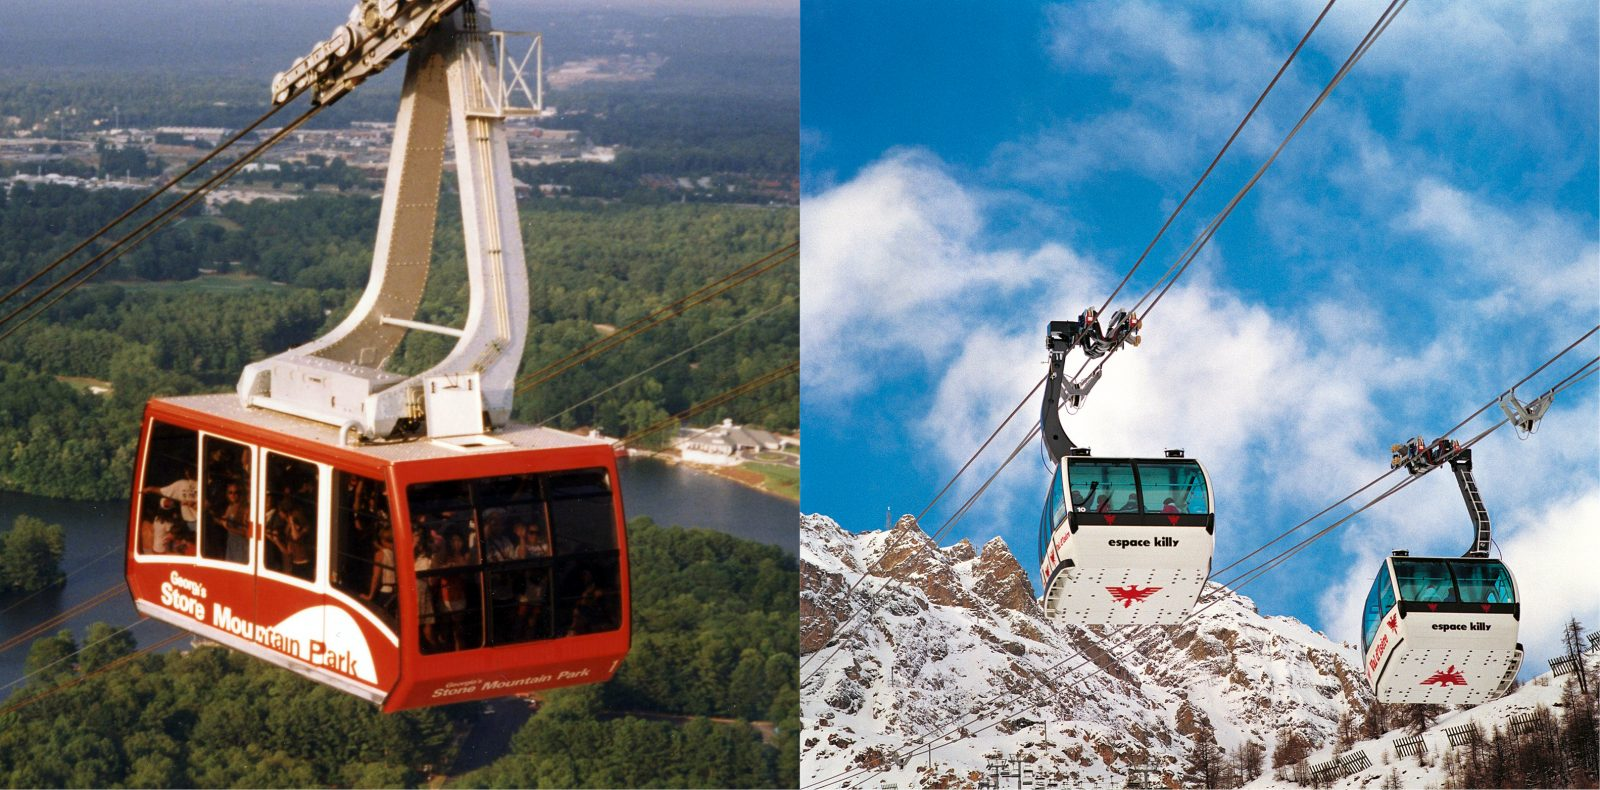 Stone Mountain in Atlanta 1996 und L'Olympique in Albertville 1992.